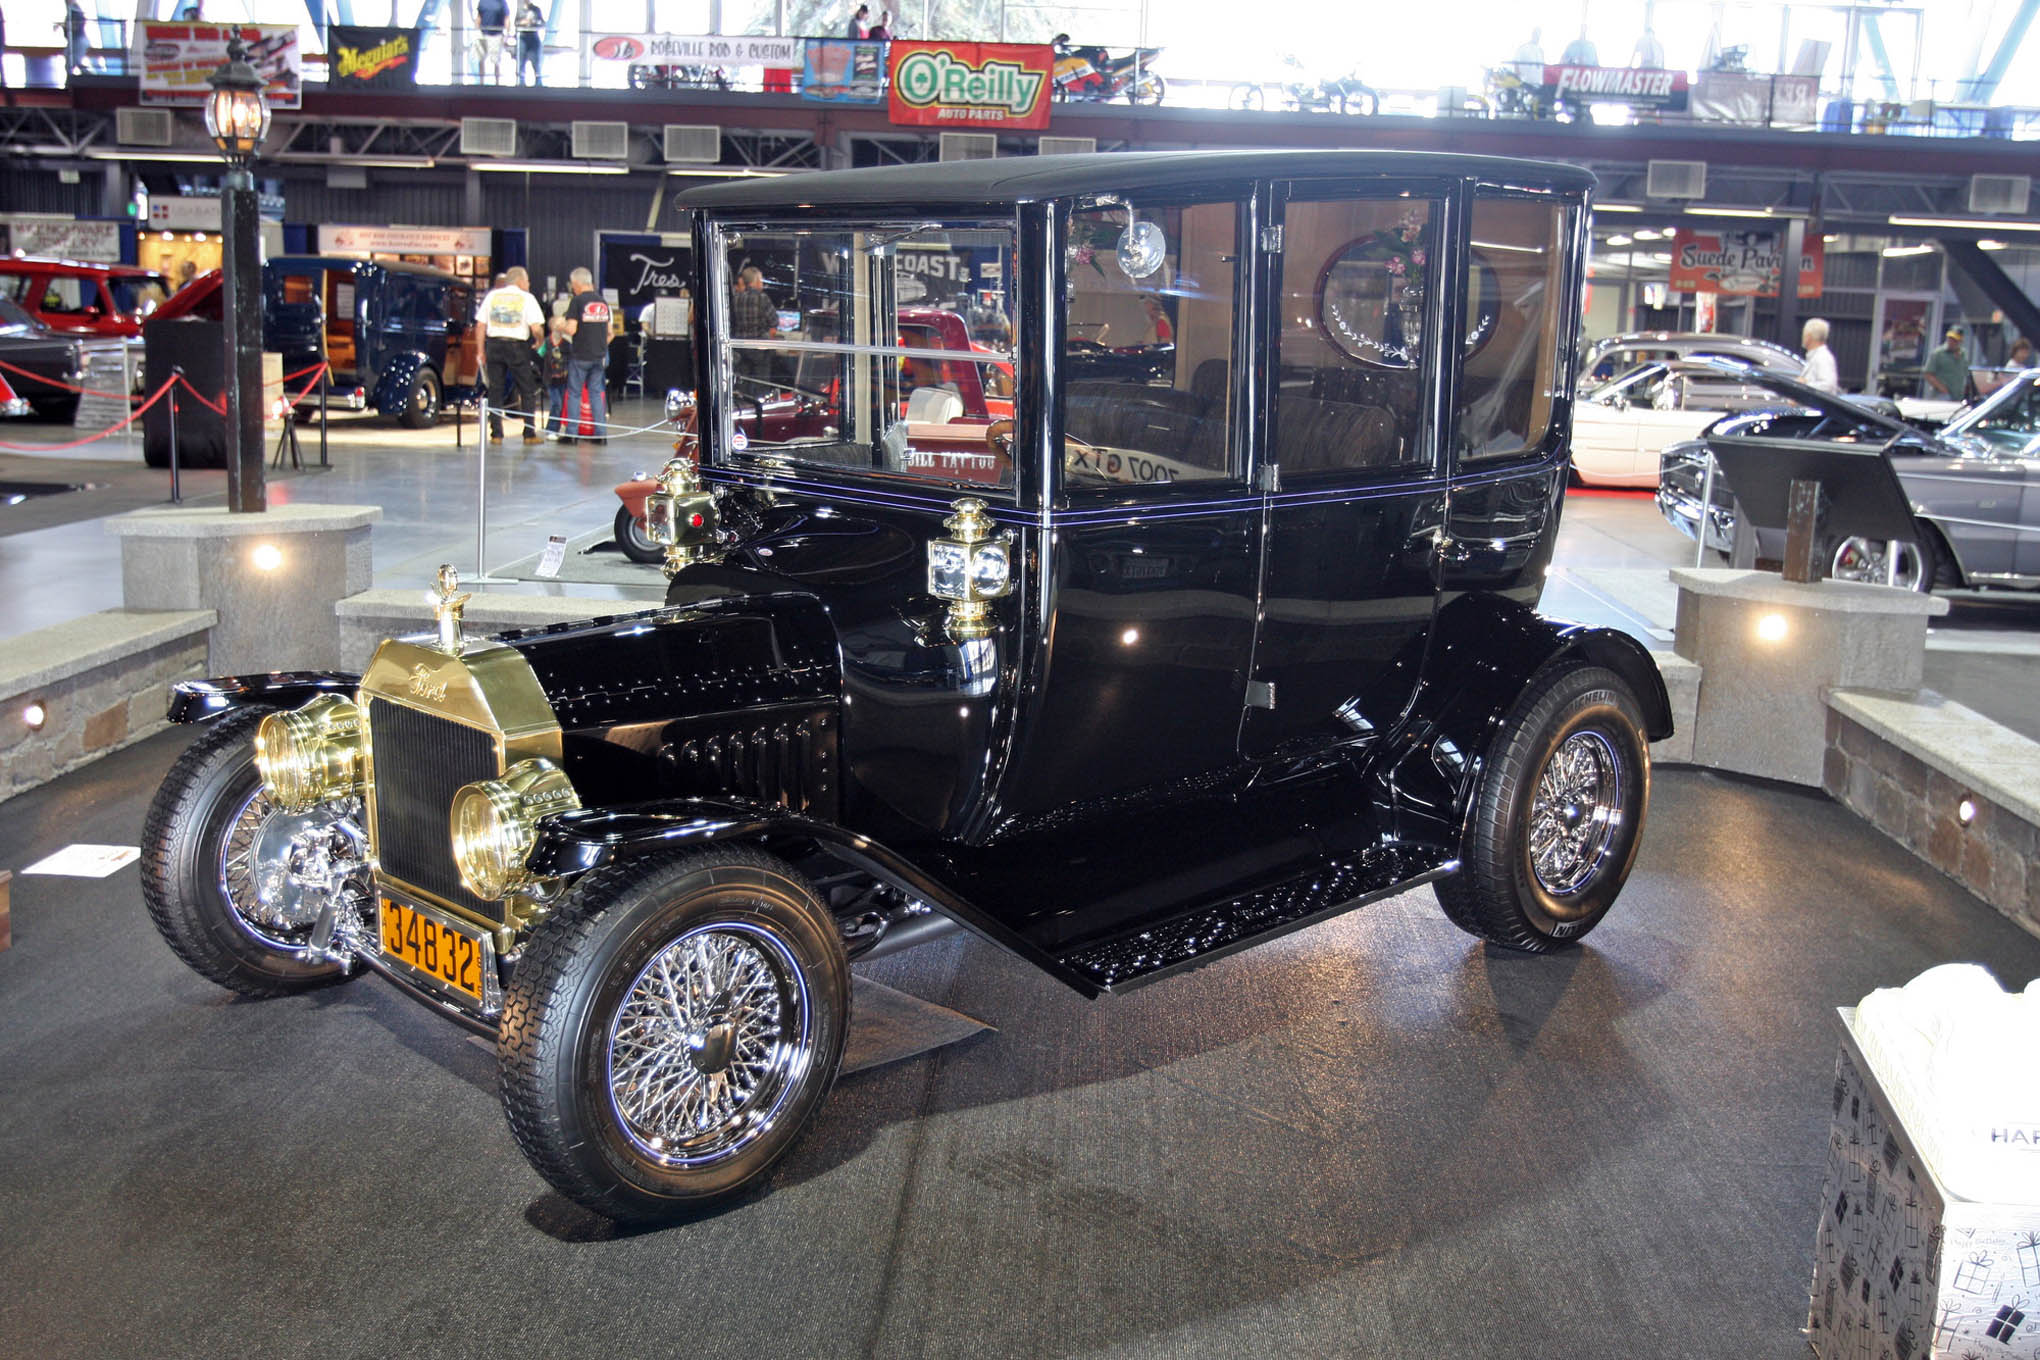 It's always exciting to run across a rare Model T center door sedan. We never expected to find a fuel-injected 347 ford engine, electronic AOD trans, and custom Jag rearend in this 1915 Ford, owned and built by Larry and Charleen Schuss.